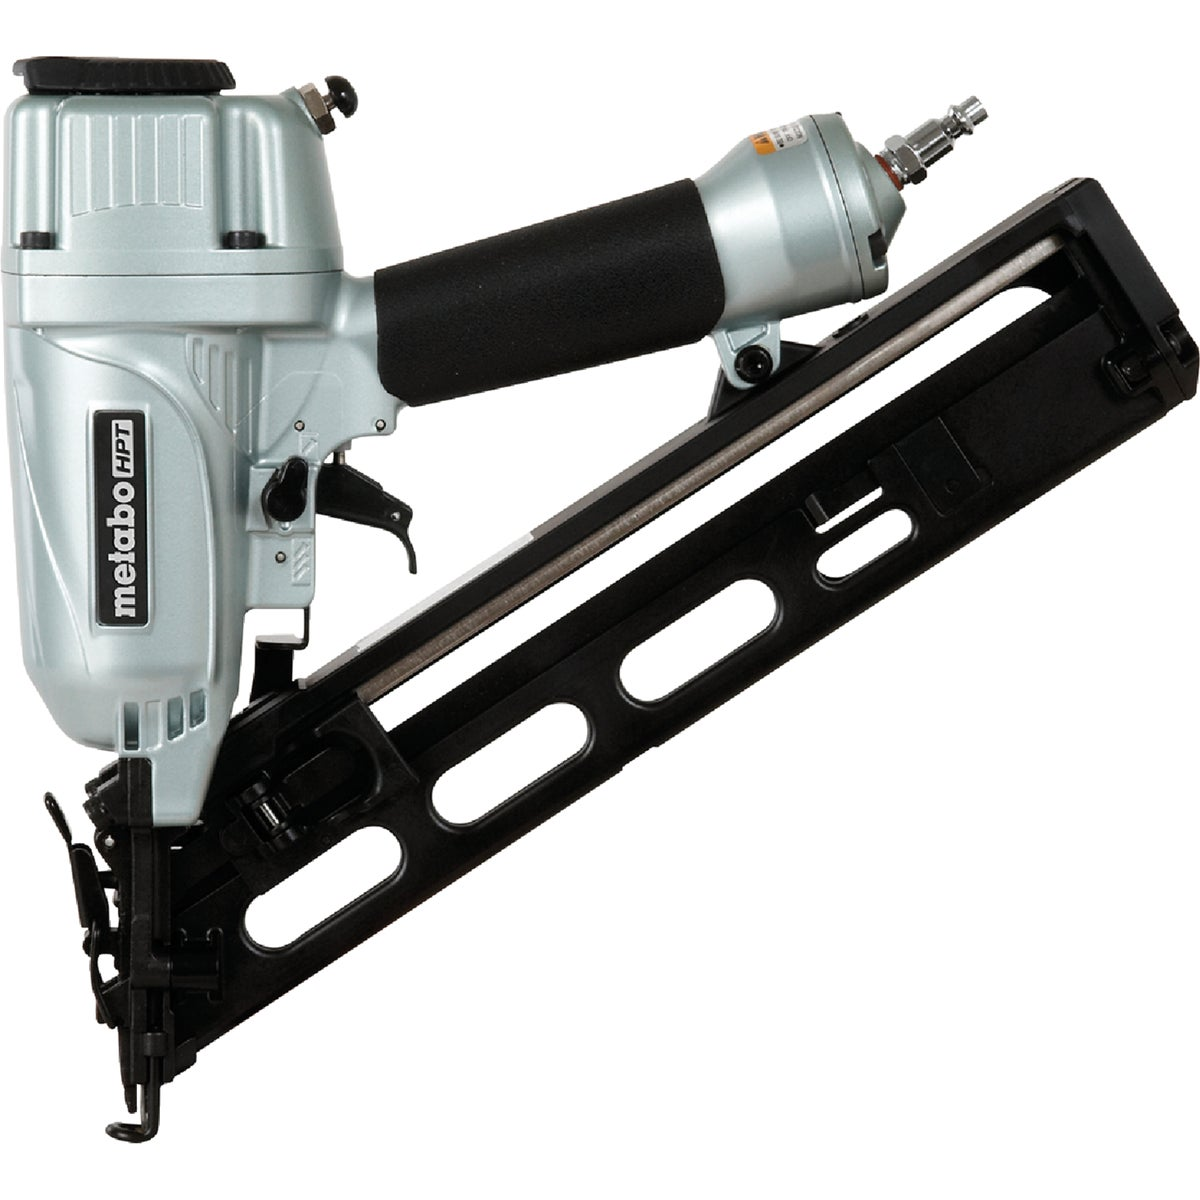 15GA ANGLE FINISH NAILER - NT65MA4(S) by Hitachi Power Tools